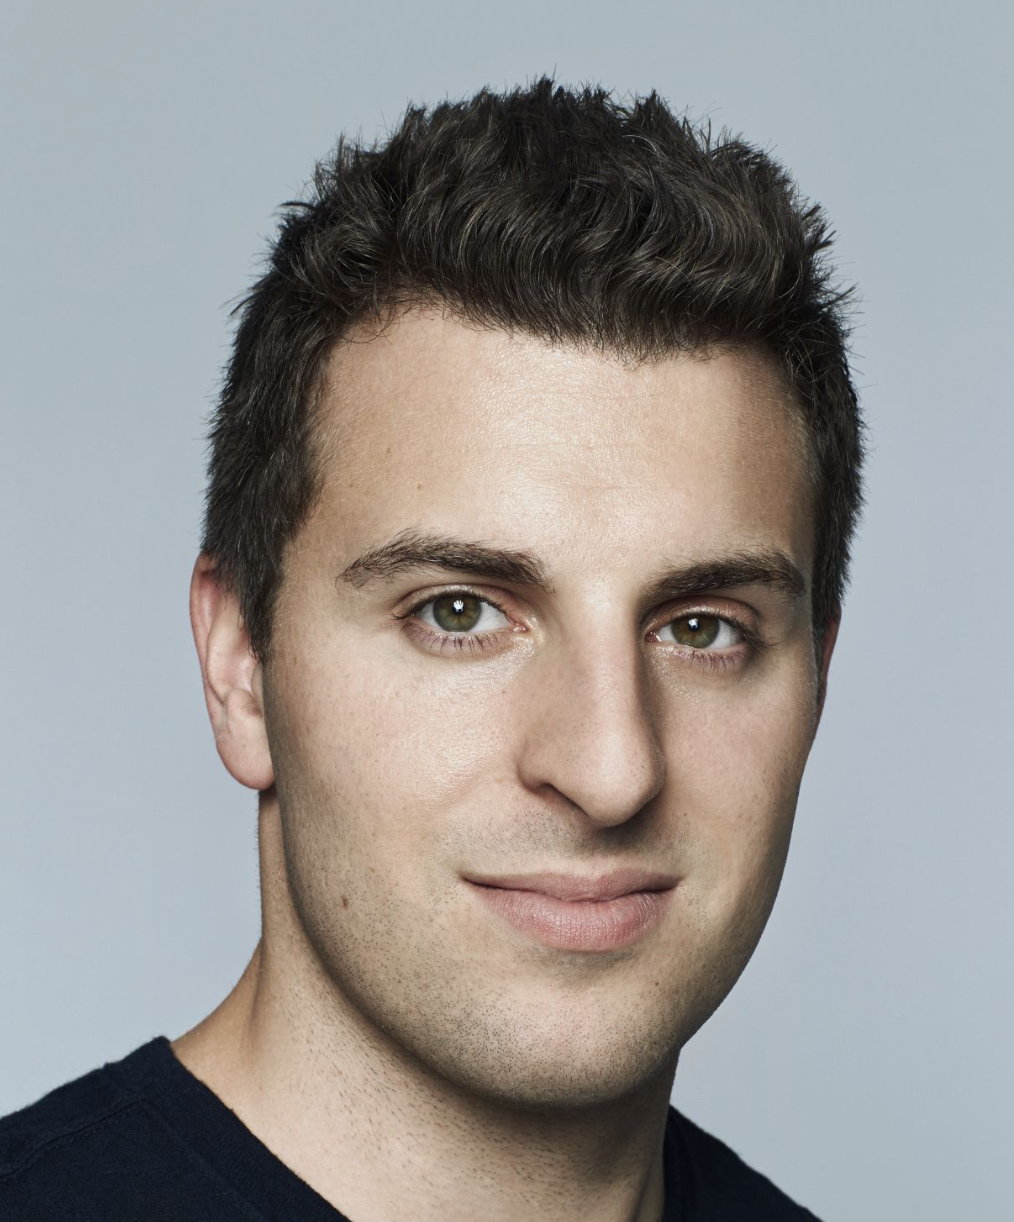 Brian Chesky is the co-founder,  Head of Community, and  CEO of Airbnb, which he started with Joe Gebbia and Nathan Blecharczyk in 2008. Brian sets the company's strategy to connect people to unique travel experiences, and drives Airbnb's mission to create a world where anyone can belong anywhere.   Image